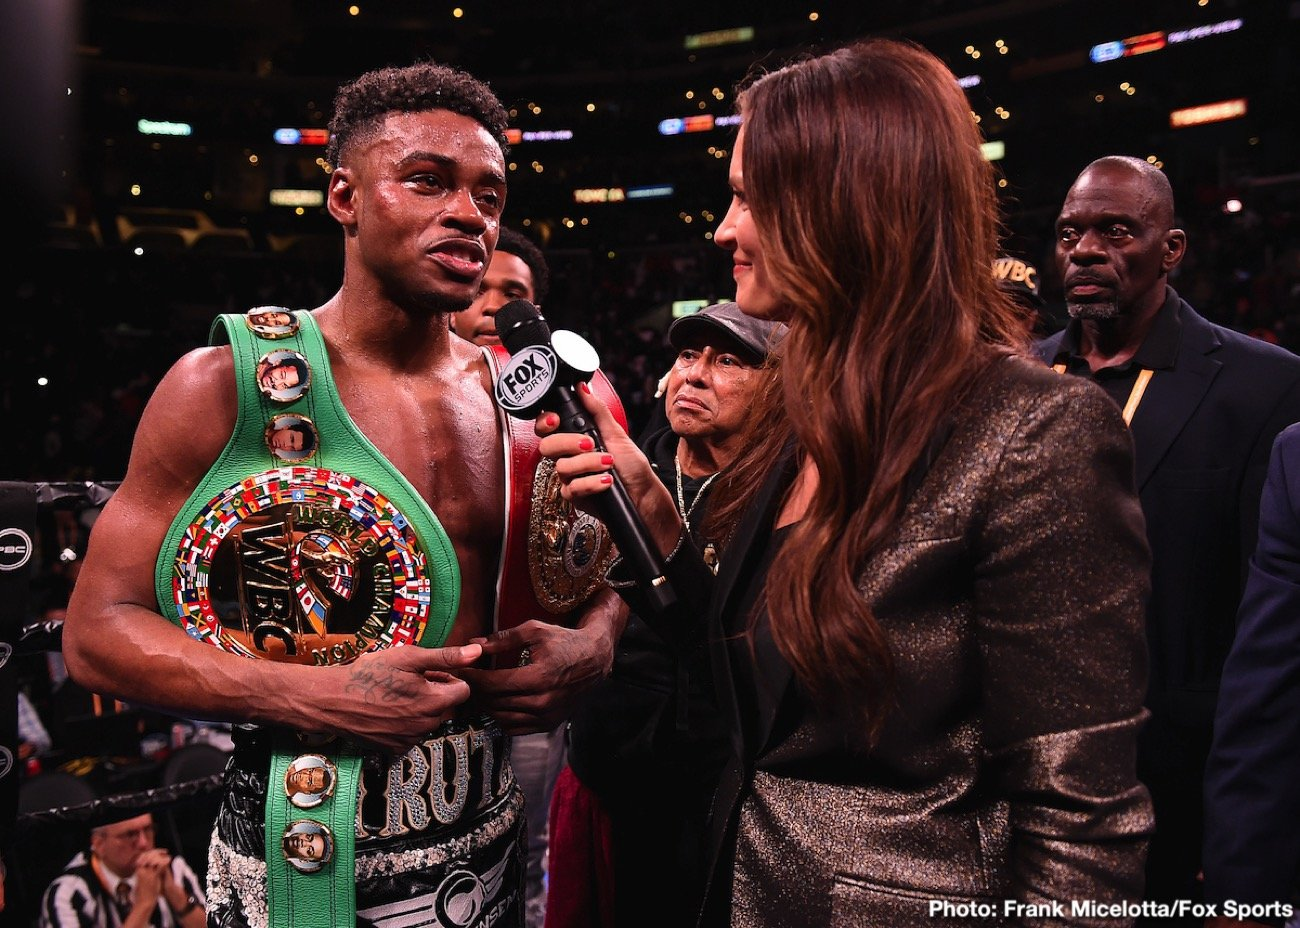 Errol Spence - STATEMENT ON ERROL SPENCE JR. CONDITION: Errol Spence Jr., IBF/WBC unified welterweight world champion, was involved in a serious, single-car accident in Dallas early Thursday morning and is being treated at a Dallas-area hospital. Spence is awake and responding and his condition is listed as stable. He did not sustain any broken bones or fractures, but has some facial lacerations. He is expected to make a full recovery.